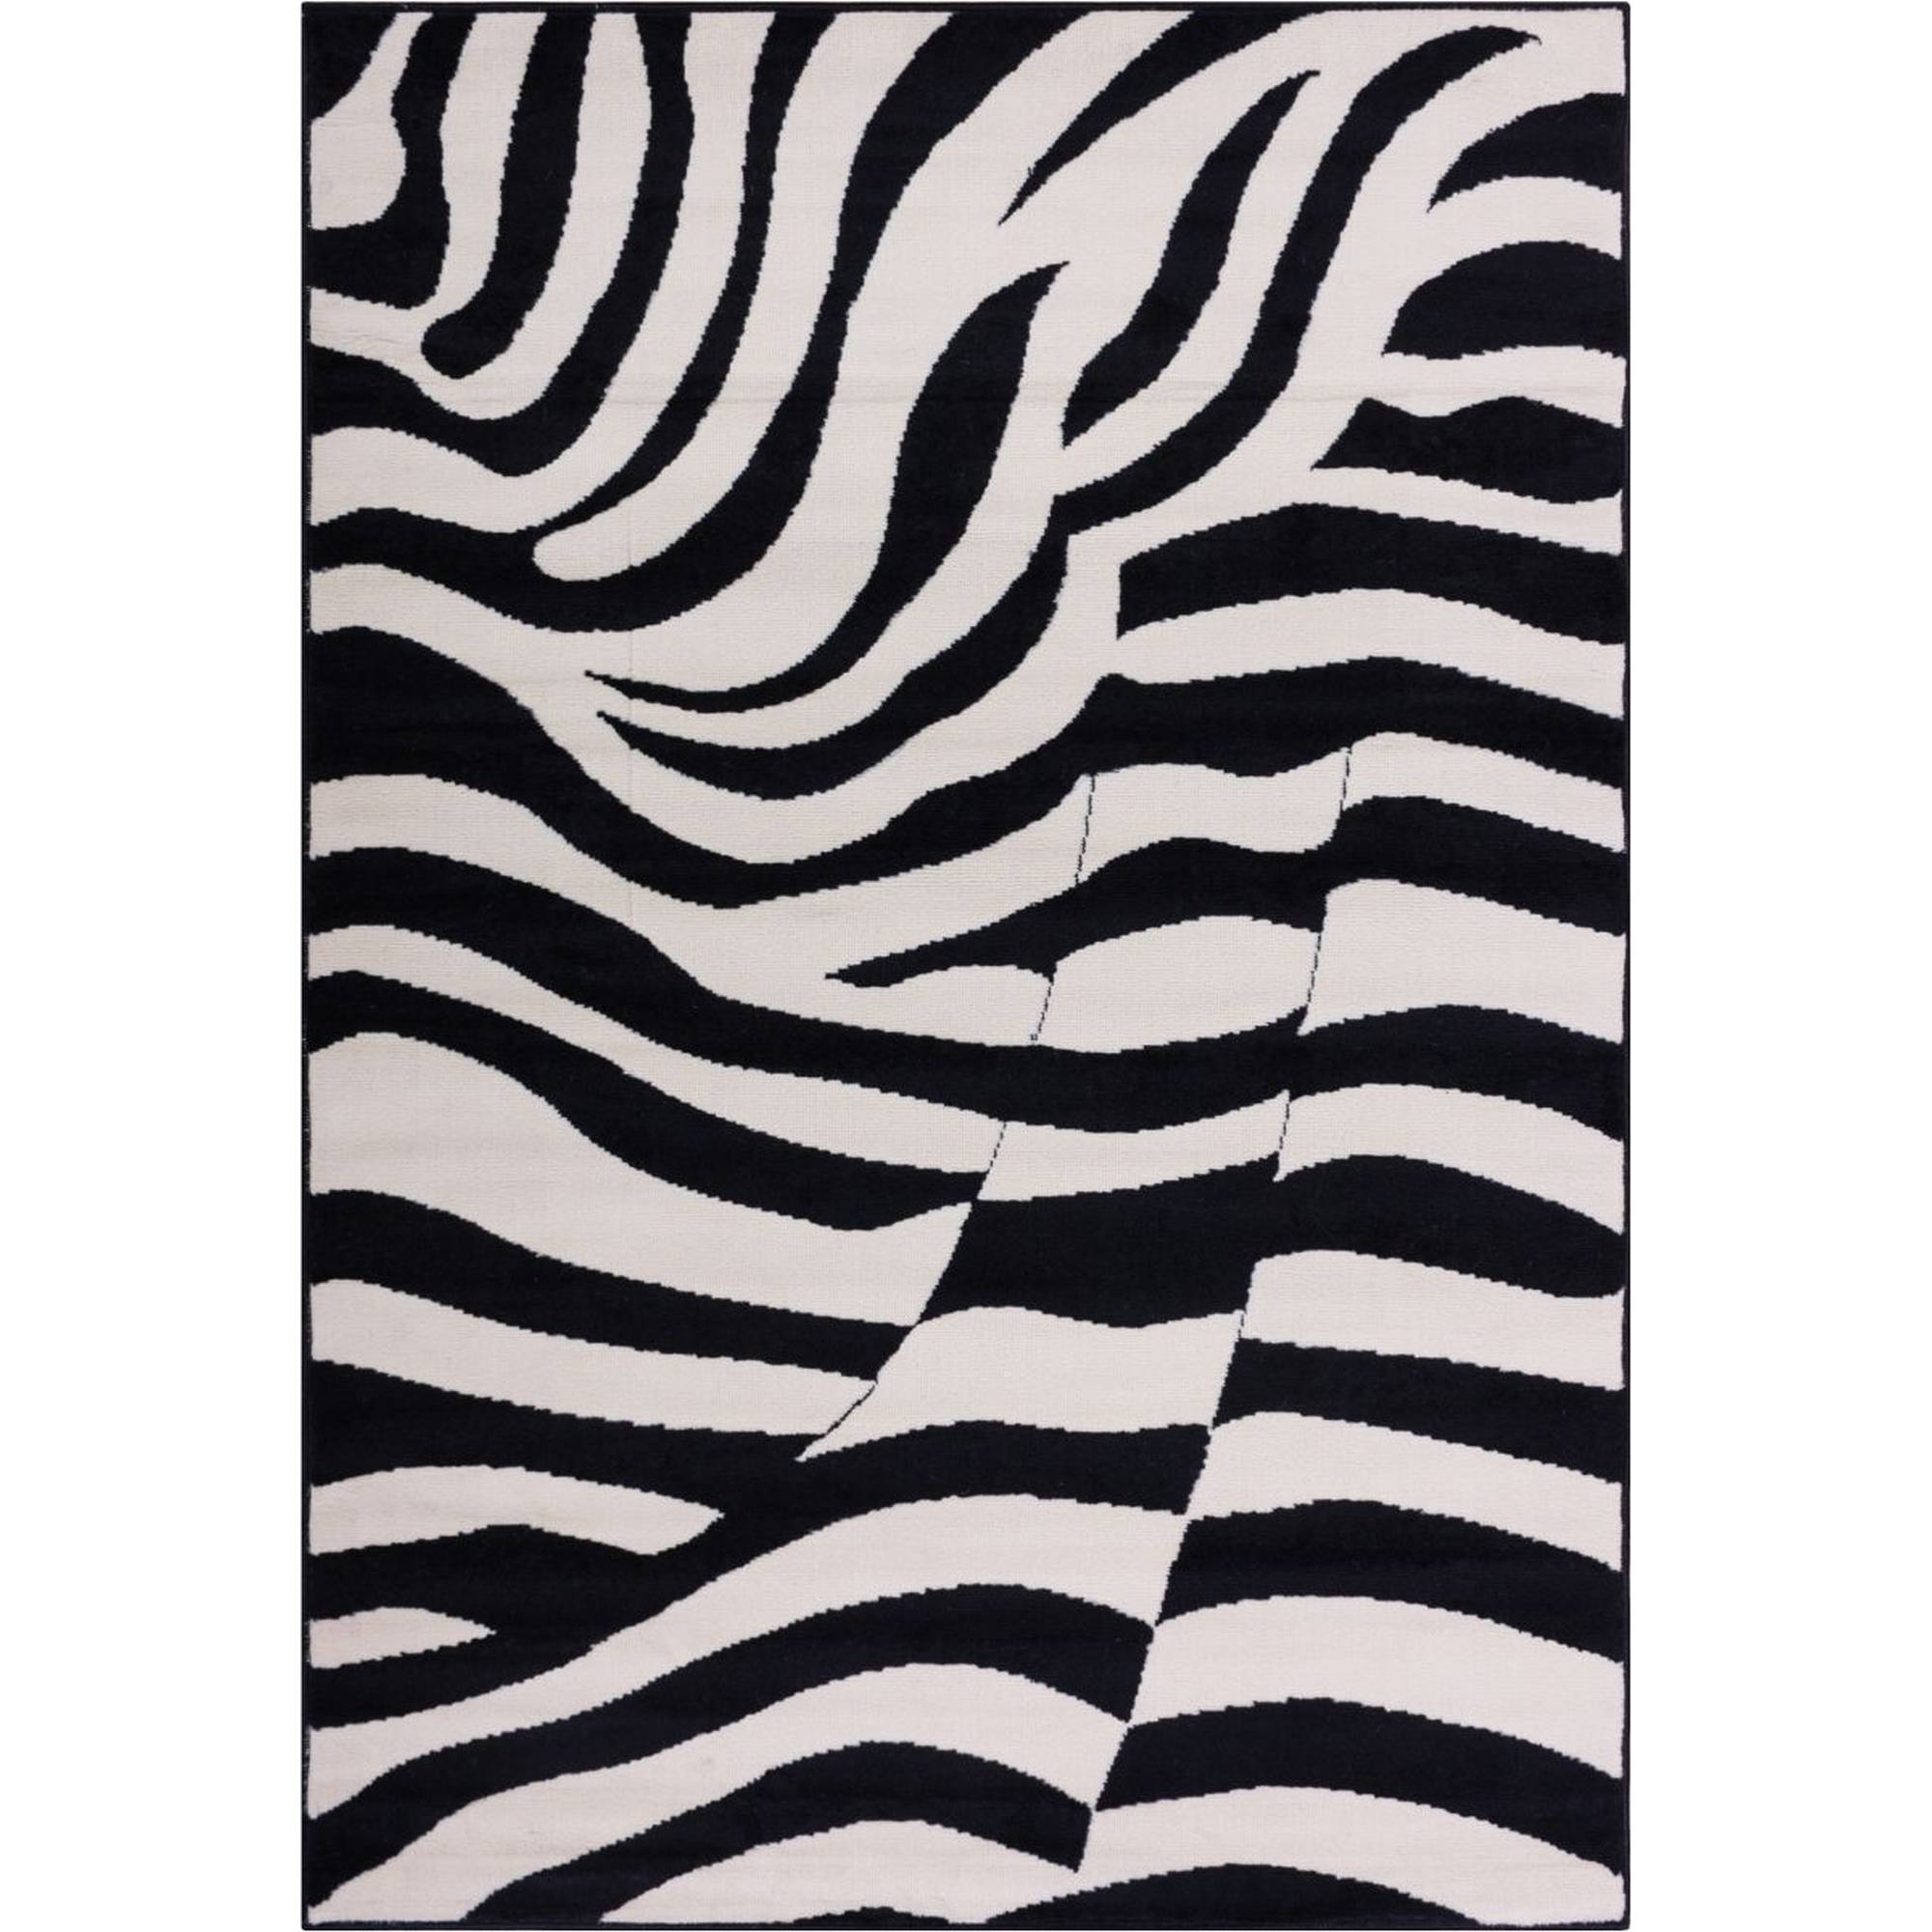 Well Woven Miami Zebra Animal Print Area Rug, Black